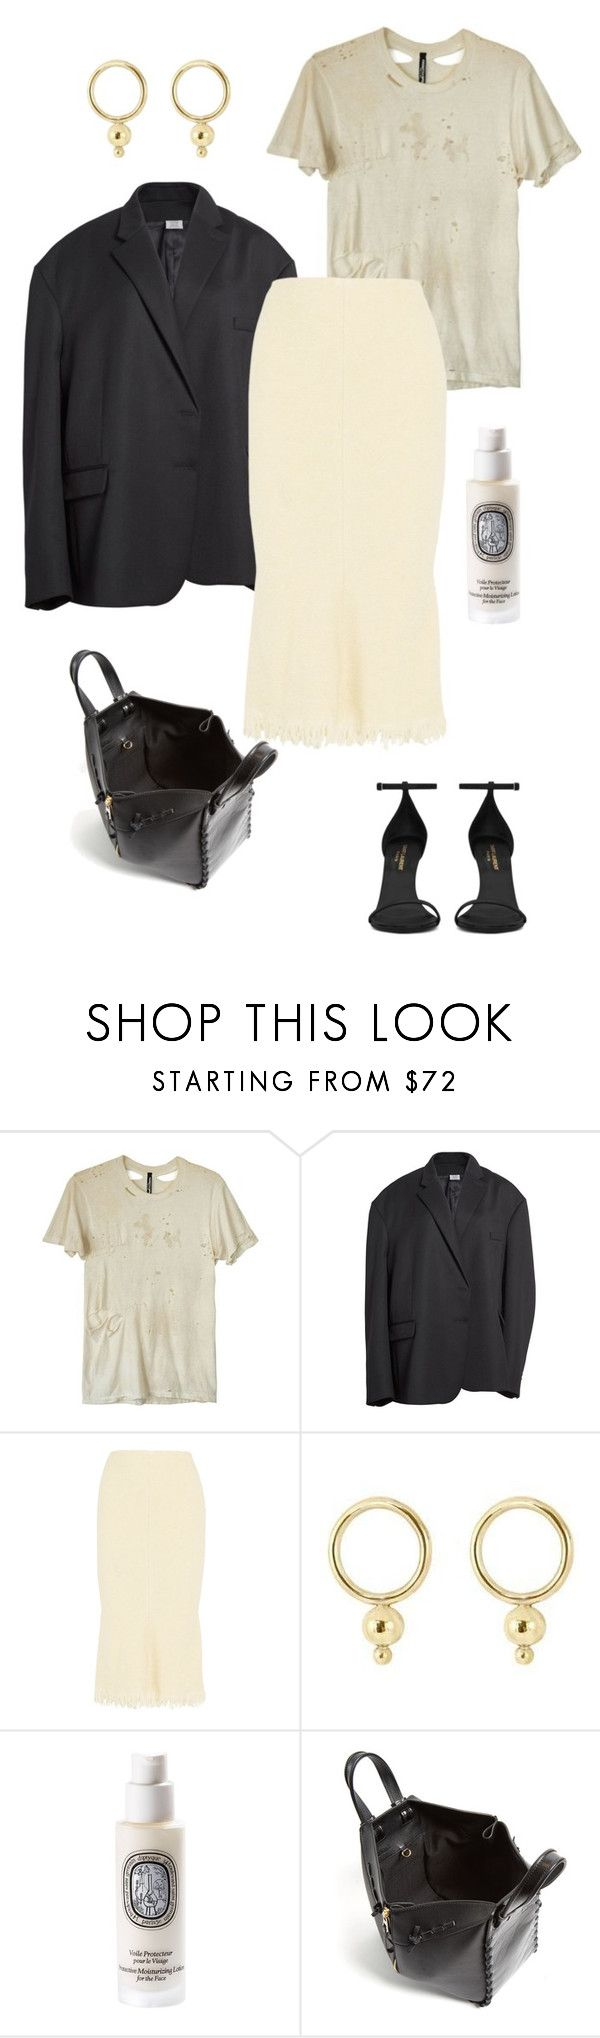 """""""24/08 1.2"""" by deborarosa ❤ liked on Polyvore featuring Obesity and Speed, Vetements, Victoria Beckham, Young Frankk, Diptyque, Loewe and Yves Saint Laurent"""